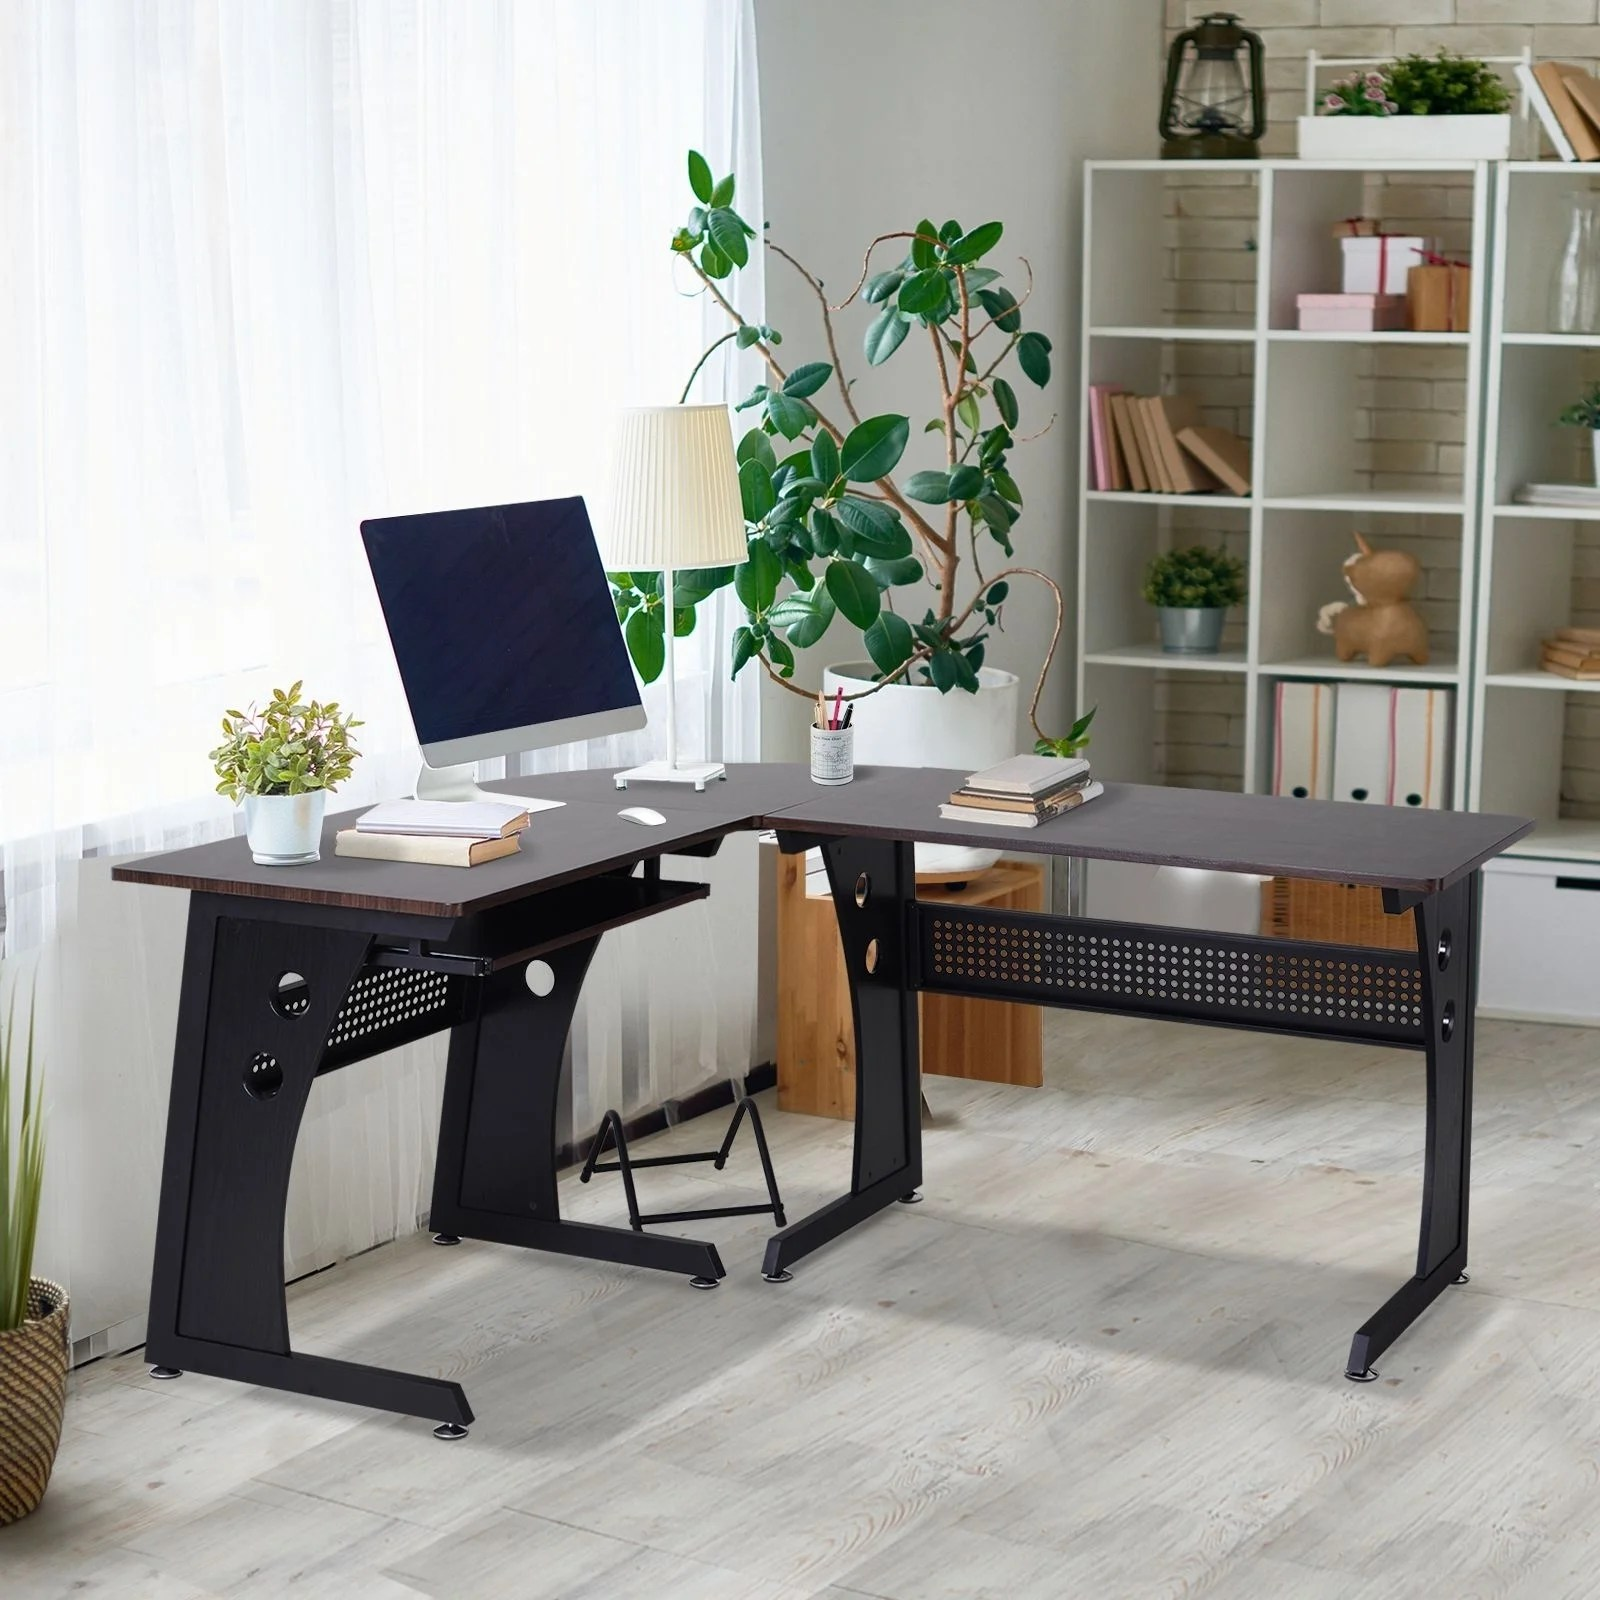 Homcom L Shaped Corner Computer Office Desk Modern Workstation Wood Steel Brown And Black 65 L Overstock 29880390